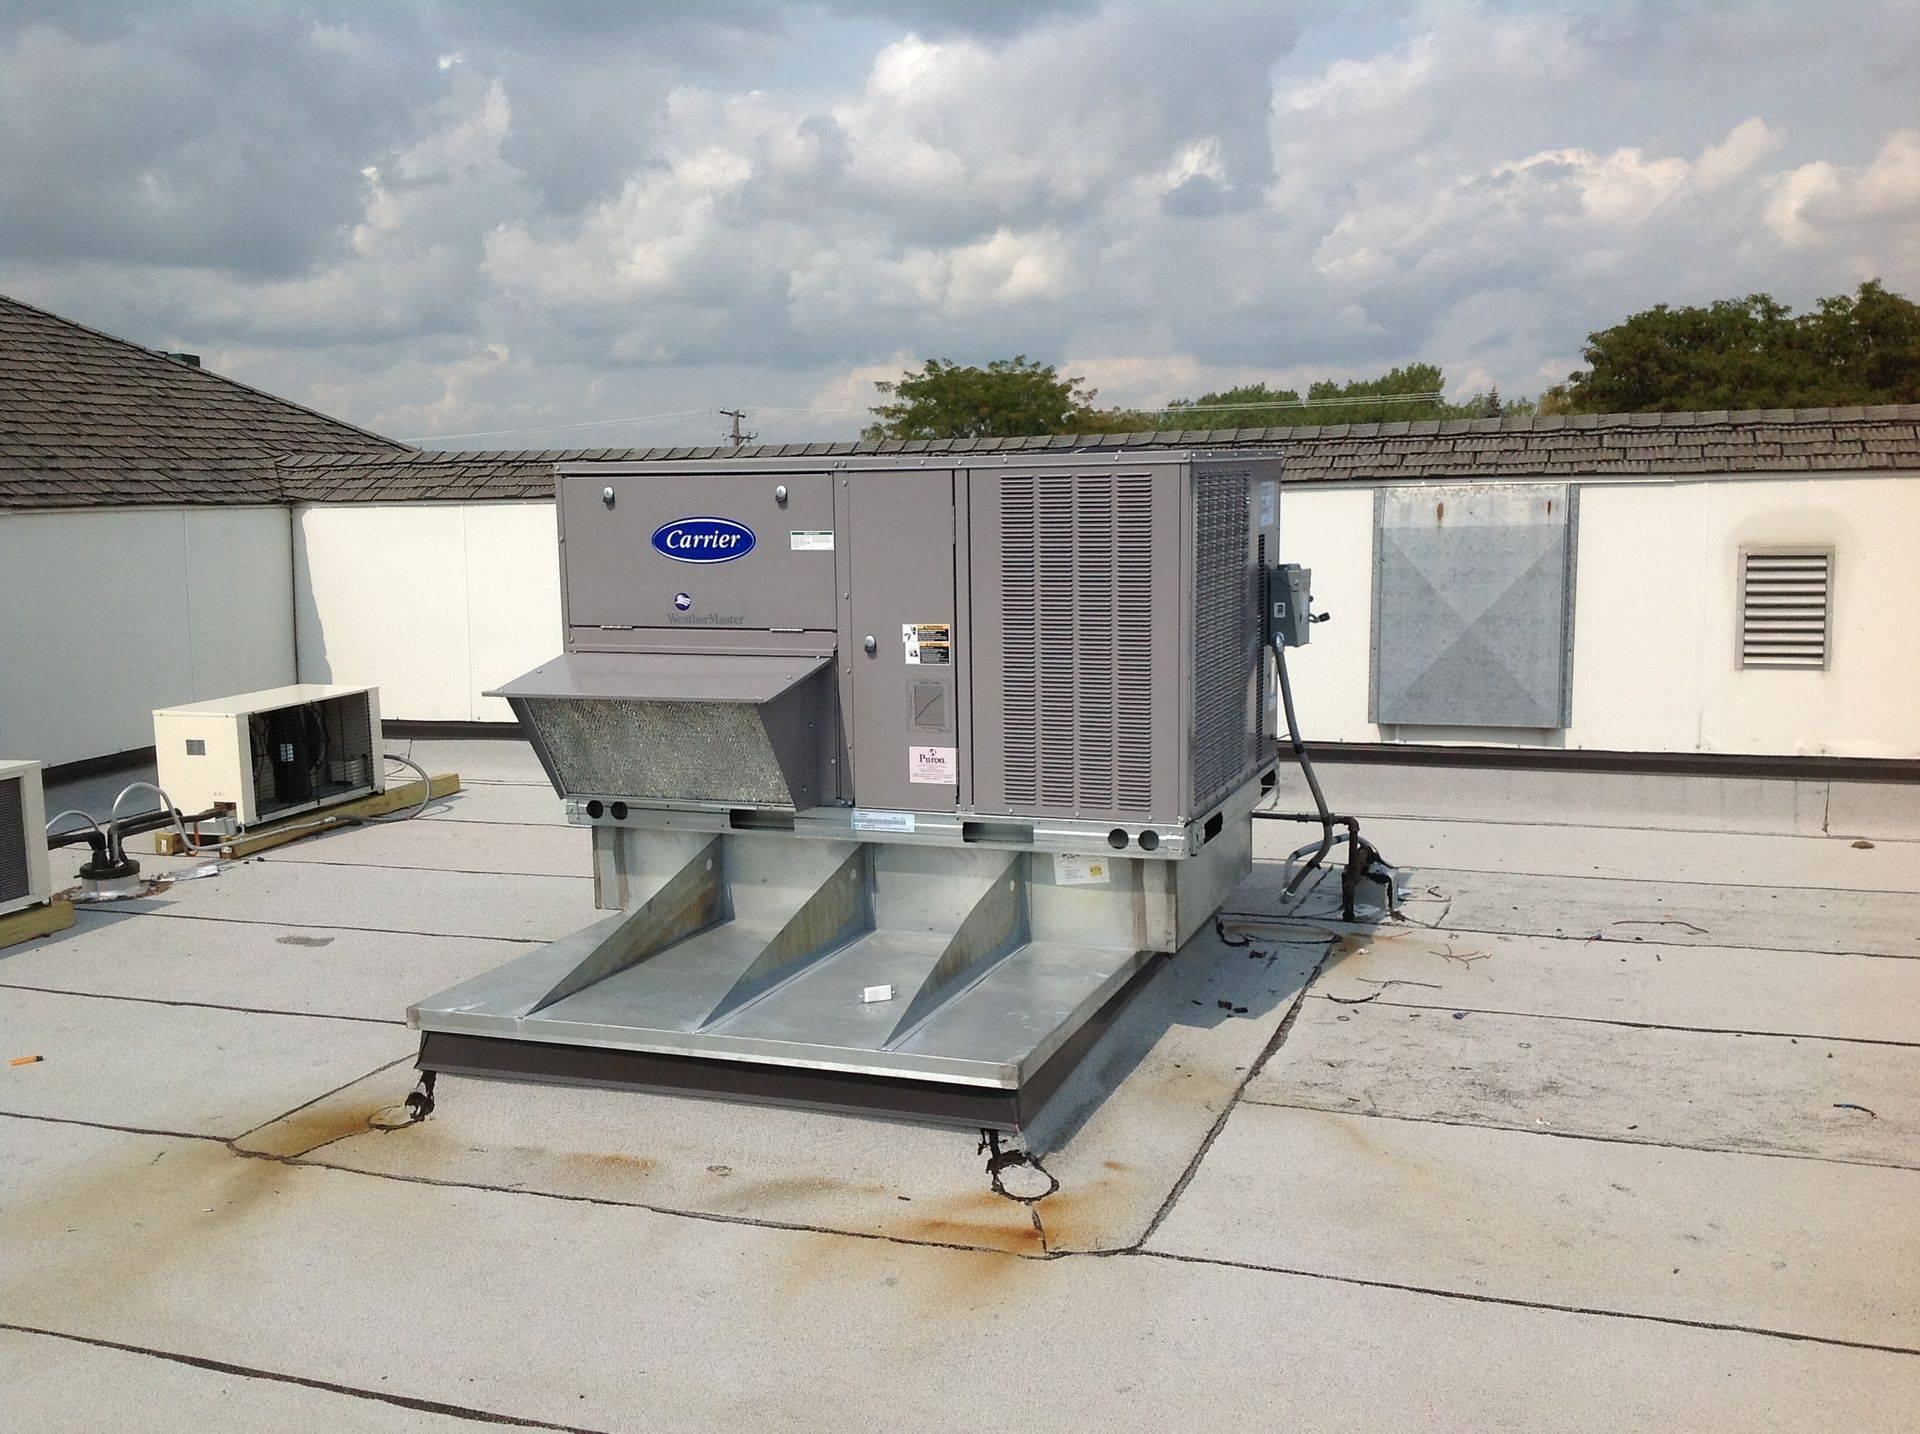 Commerical roof top unit